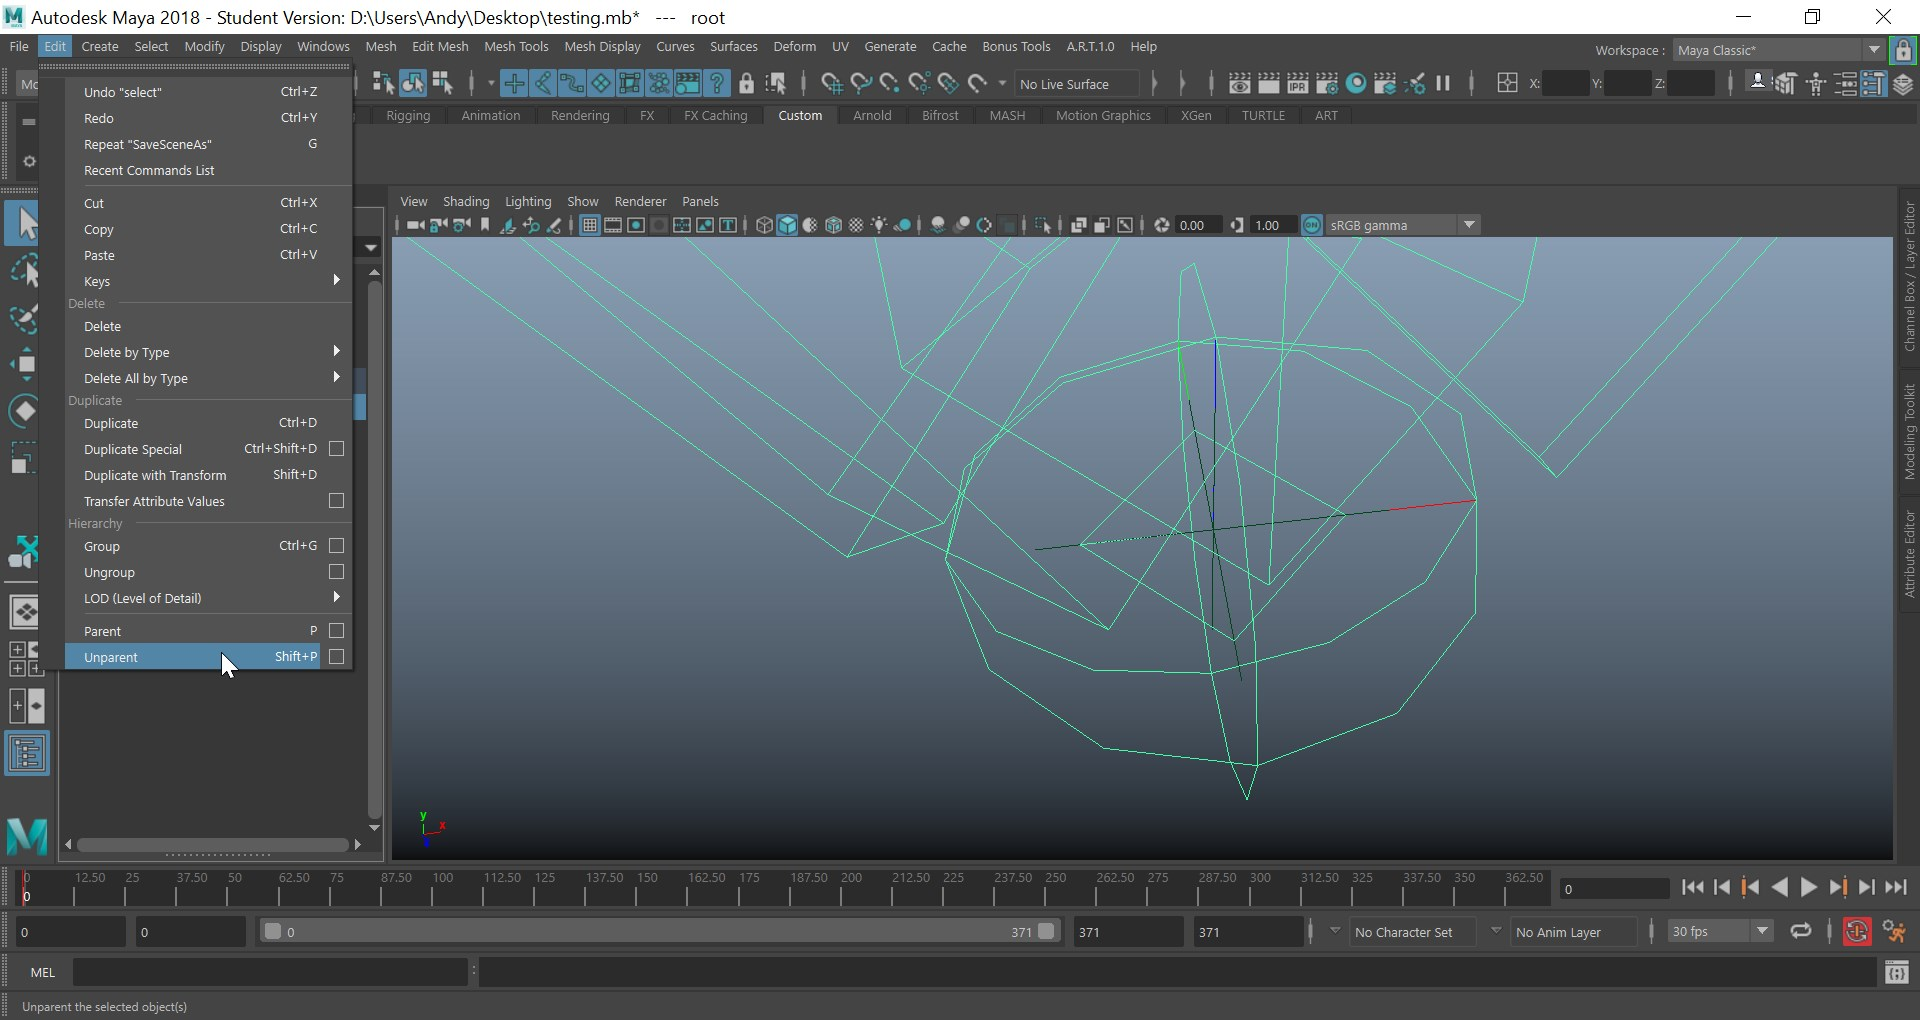 Adding Mixamo Animations to Unreal Rigs | Andrew Montoya IV